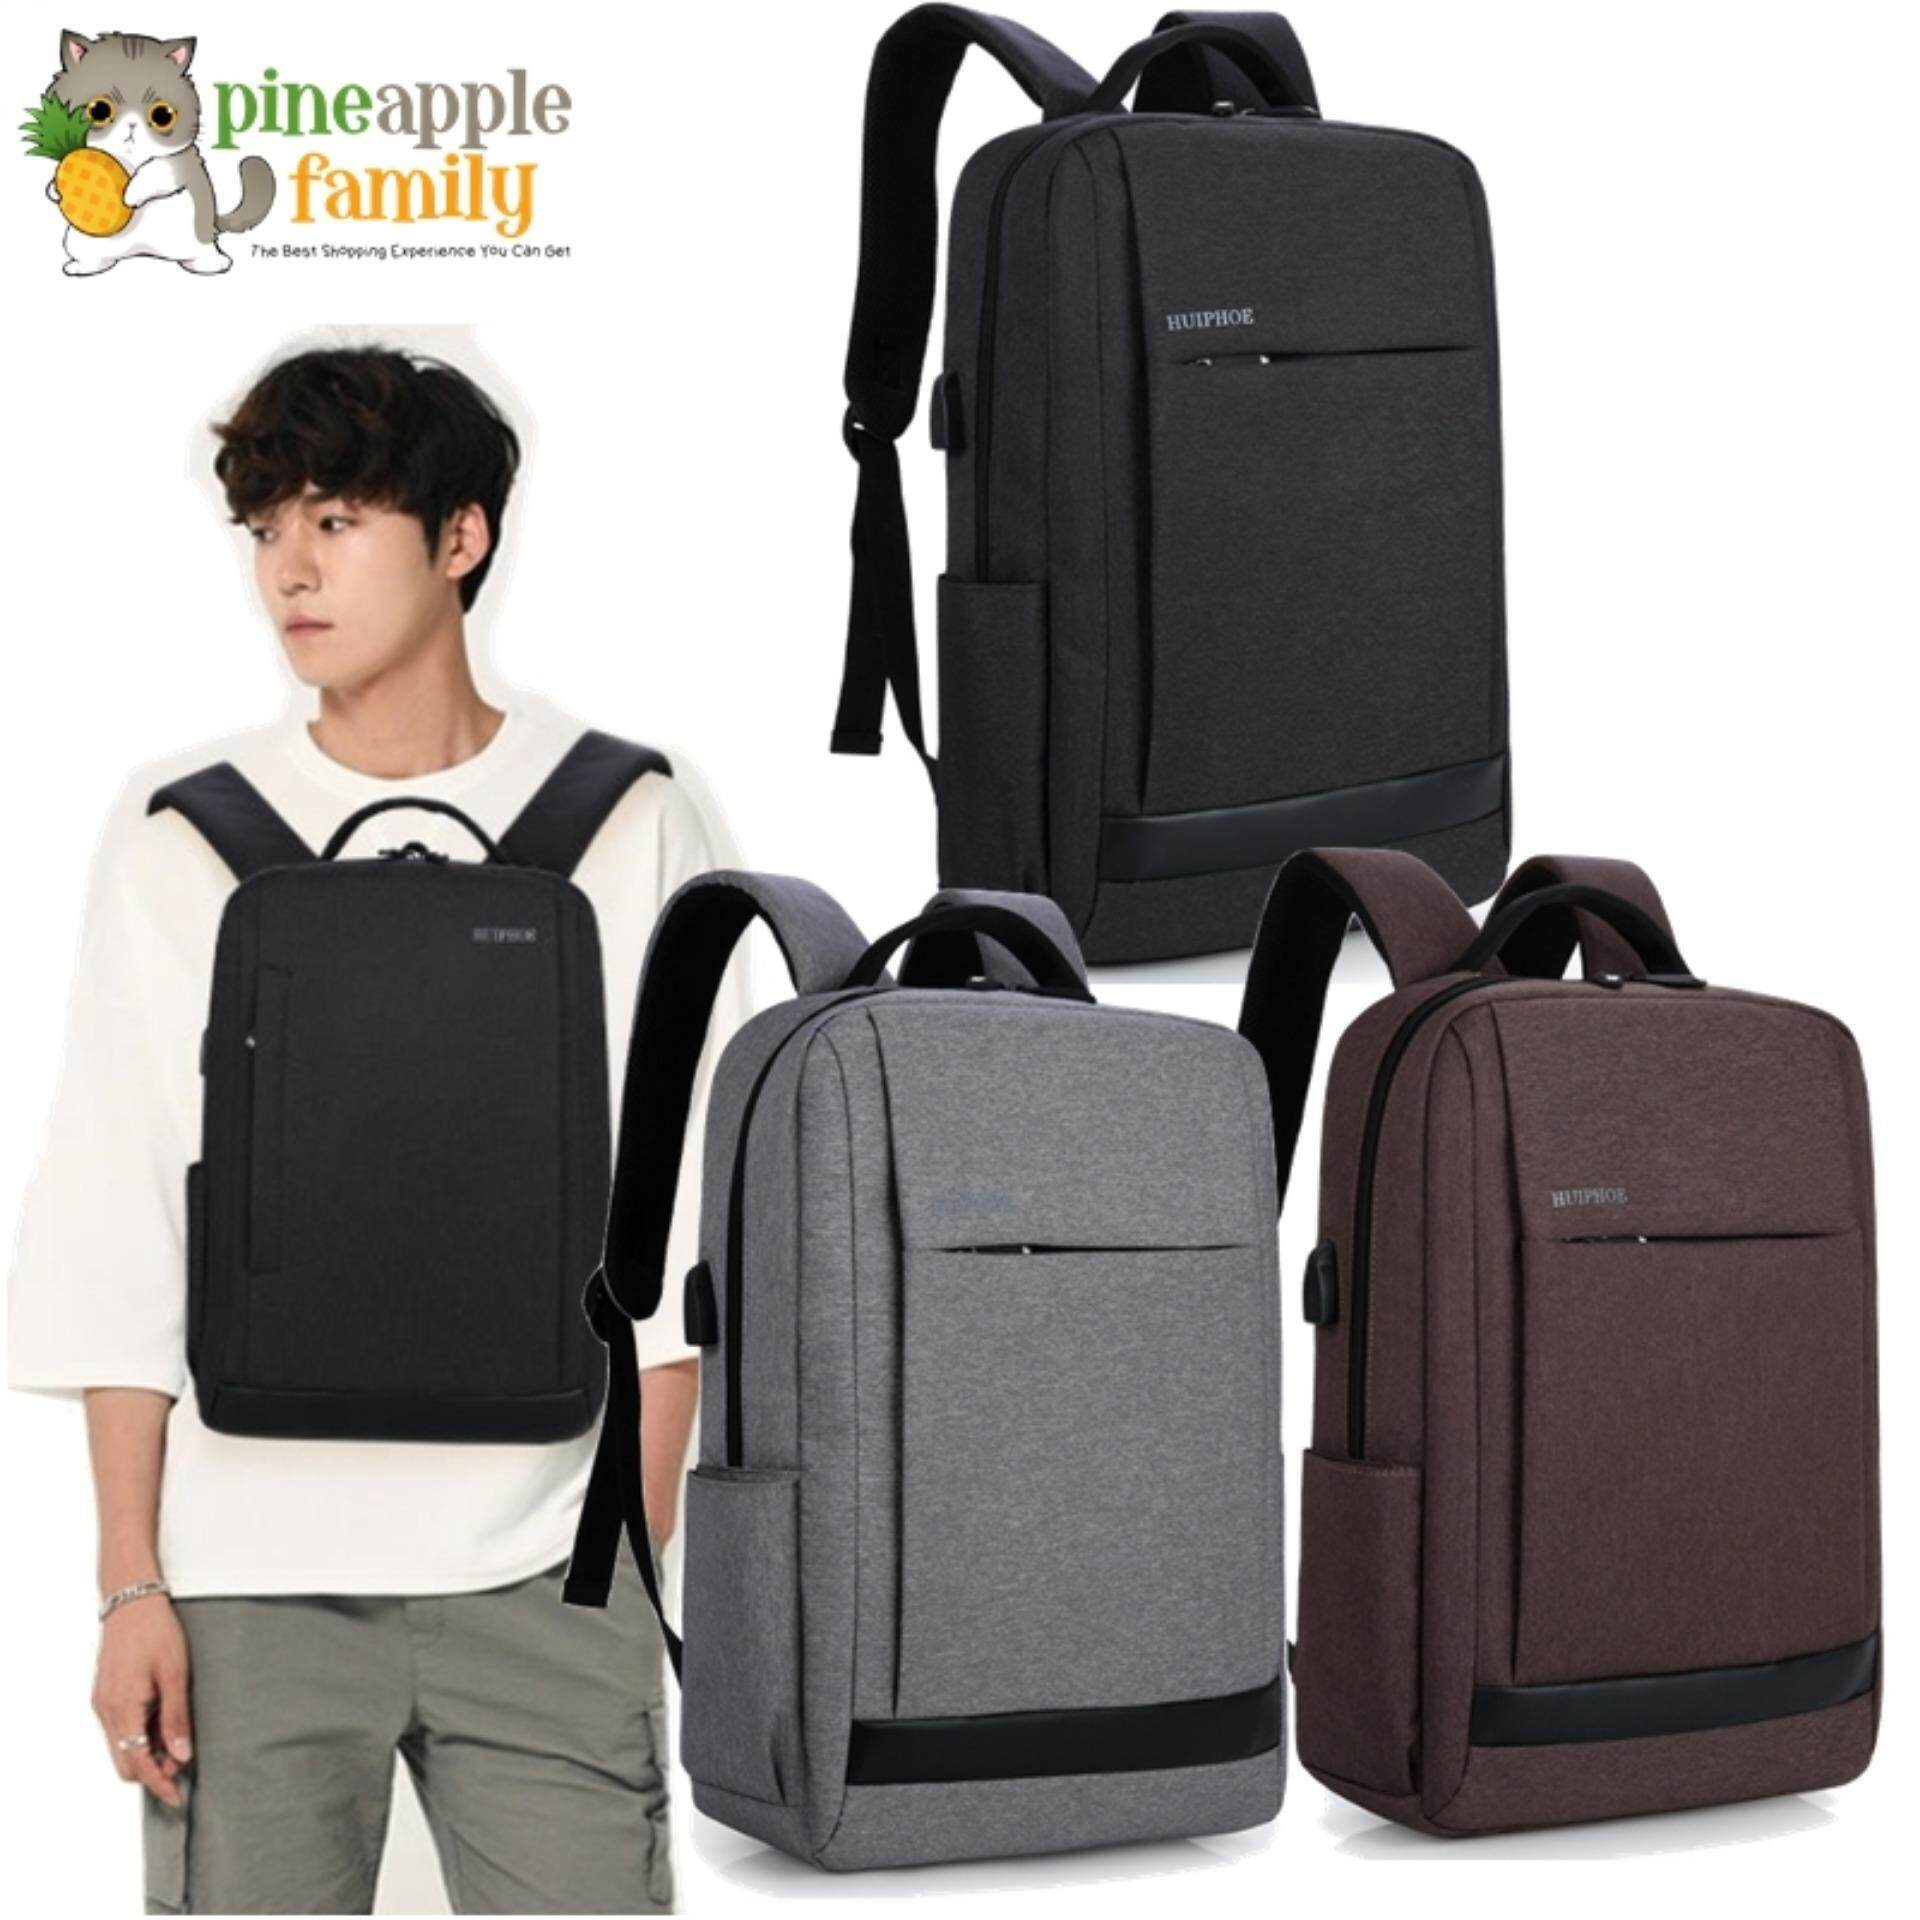 Eneko Business Laptop Backpack With Usb Charging Port By Pineapple Family.